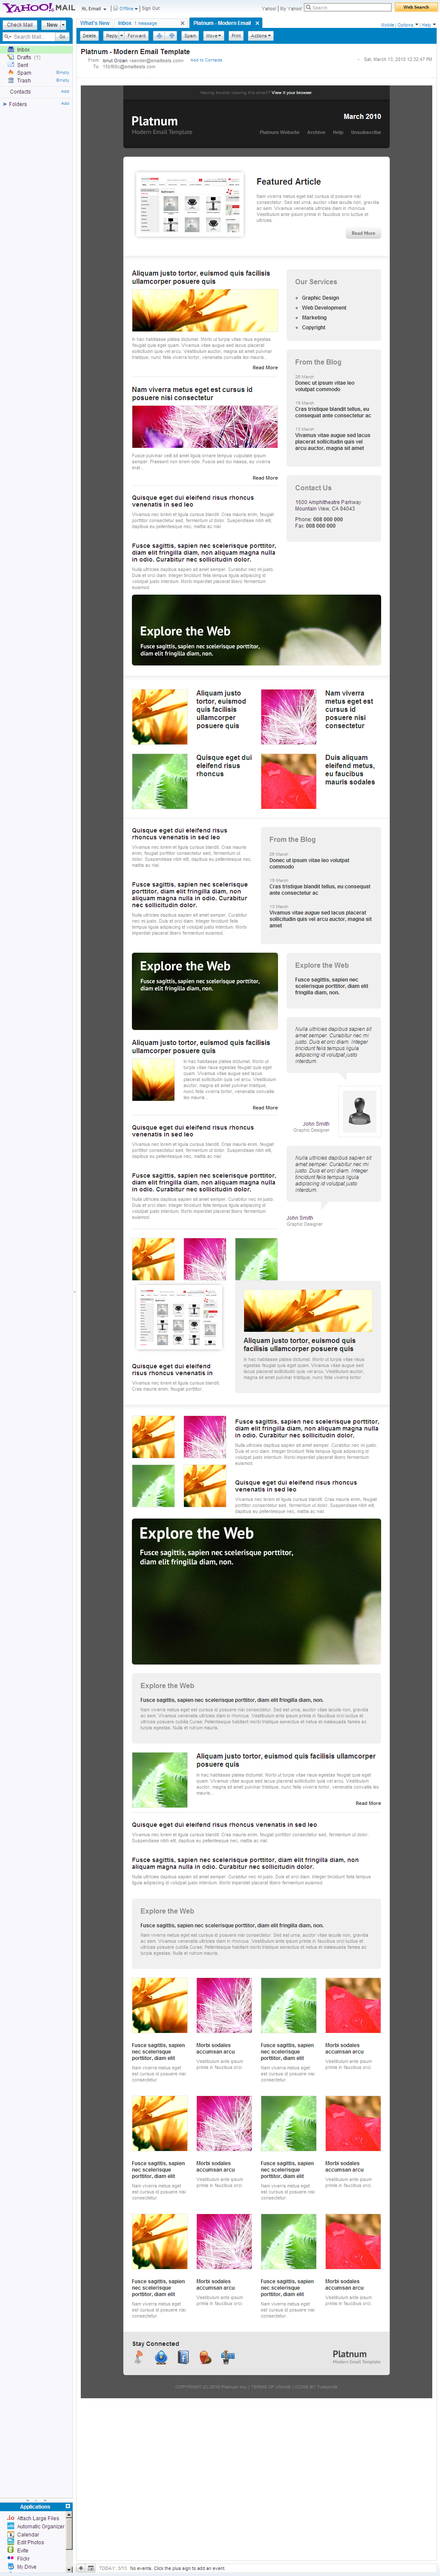 Platnum Email Template, 6 Layouts, 8 Colors - Yahoo Mail - All elements listed.